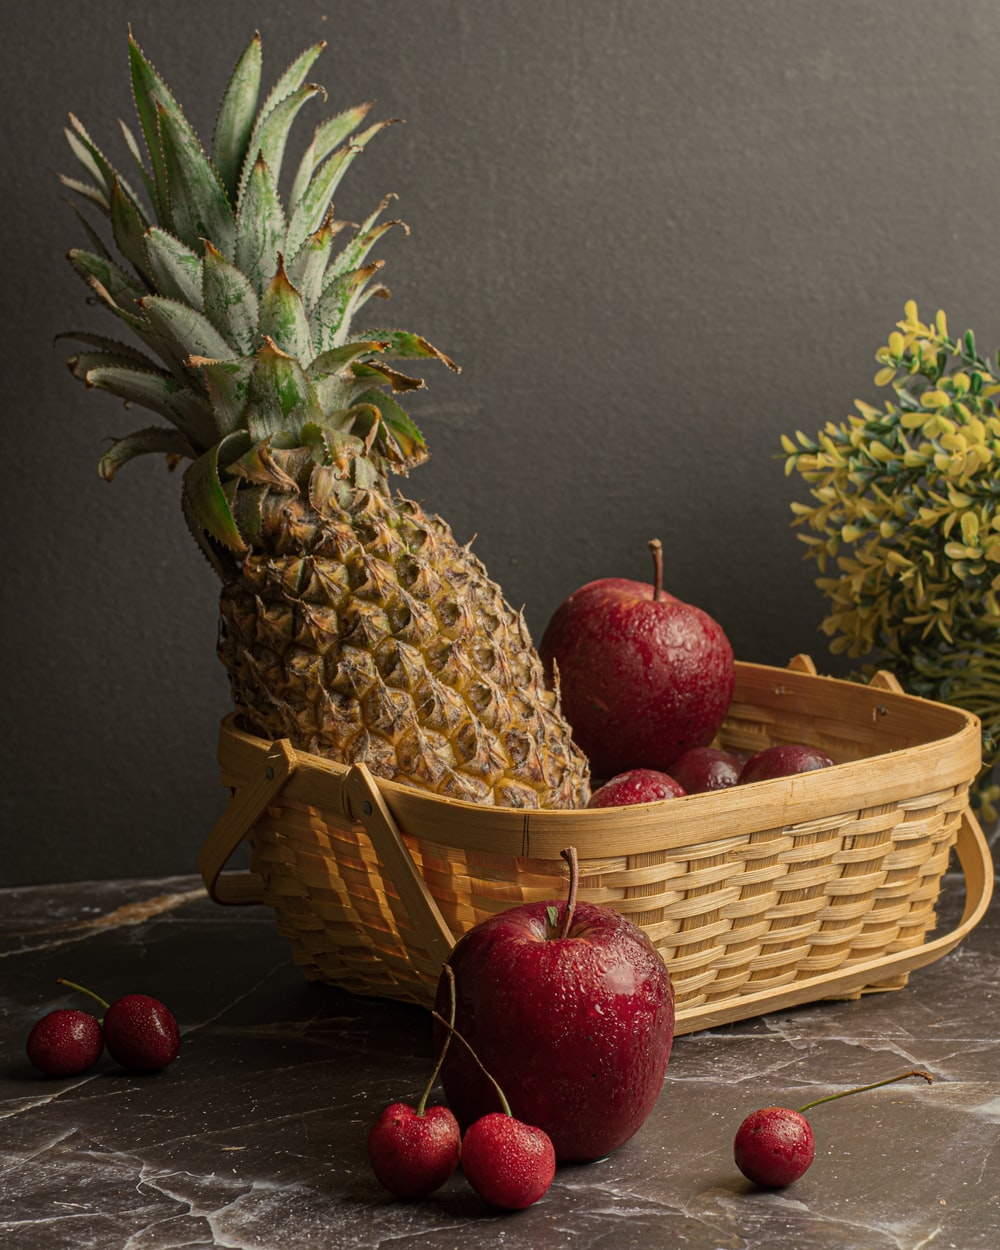 red apple fruit on brown woven basket